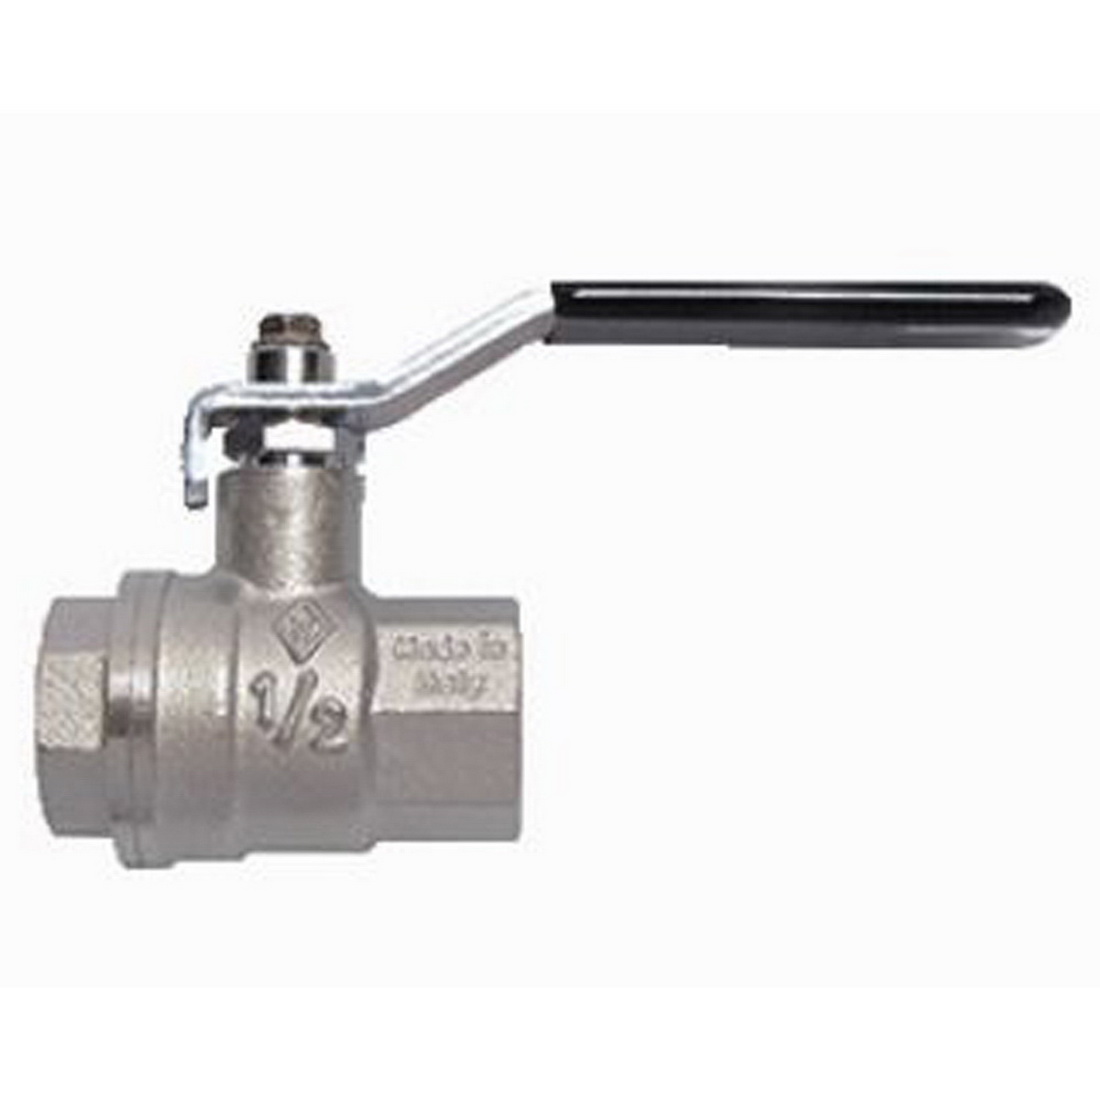 O8 Series Full Flow Ball Valve 25mm Female x Female Water 580psi Long Handle Brass Nickel